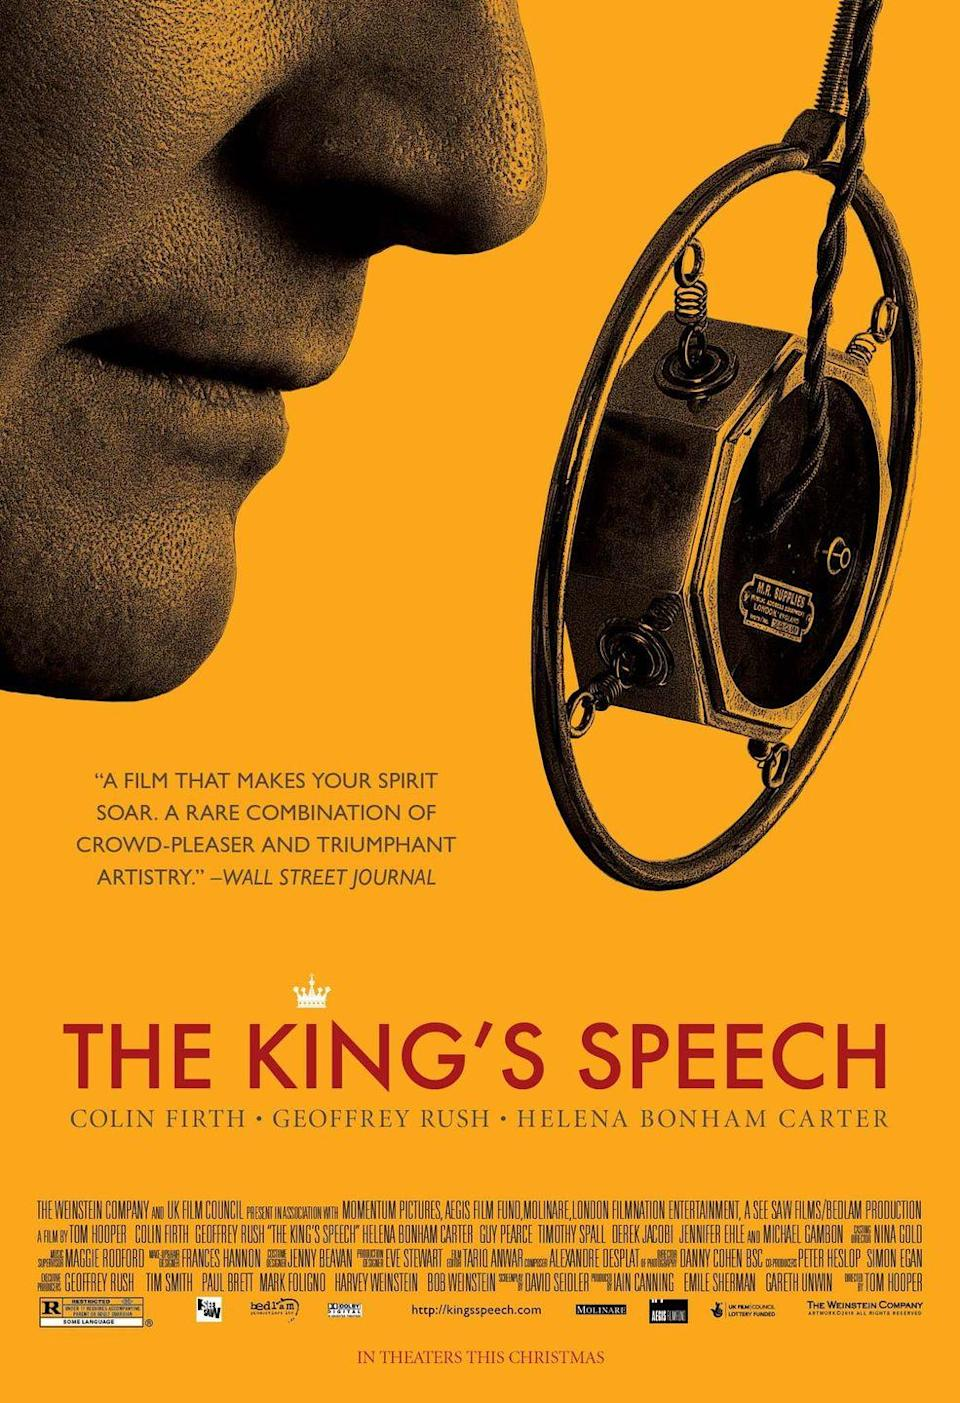 """<p><a class=""""link rapid-noclick-resp"""" href=""""https://www.amazon.com/Kings-Speech-Colin-Firth/dp/B004R36QUE/ref=sr_1_1?dchild=1&keywords=the+king%27s+speech&qid=1614179802&sr=8-1&tag=syn-yahoo-20&ascsubtag=%5Bartid%7C10063.g.35716832%5Bsrc%7Cyahoo-us"""" rel=""""nofollow noopener"""" target=""""_blank"""" data-ylk=""""slk:Watch Now"""">Watch Now</a></p><p>This Best Picture-winning film also brought Colin Firth the Best Actor Oscar for his complex portrayal of King George VI. Unexpectedly ascending the throne after his brother abdicates, the king is forced to find a solution for his life-long stutter with the help of an unconventional speech therapist (Geoffrey Rush). </p>"""